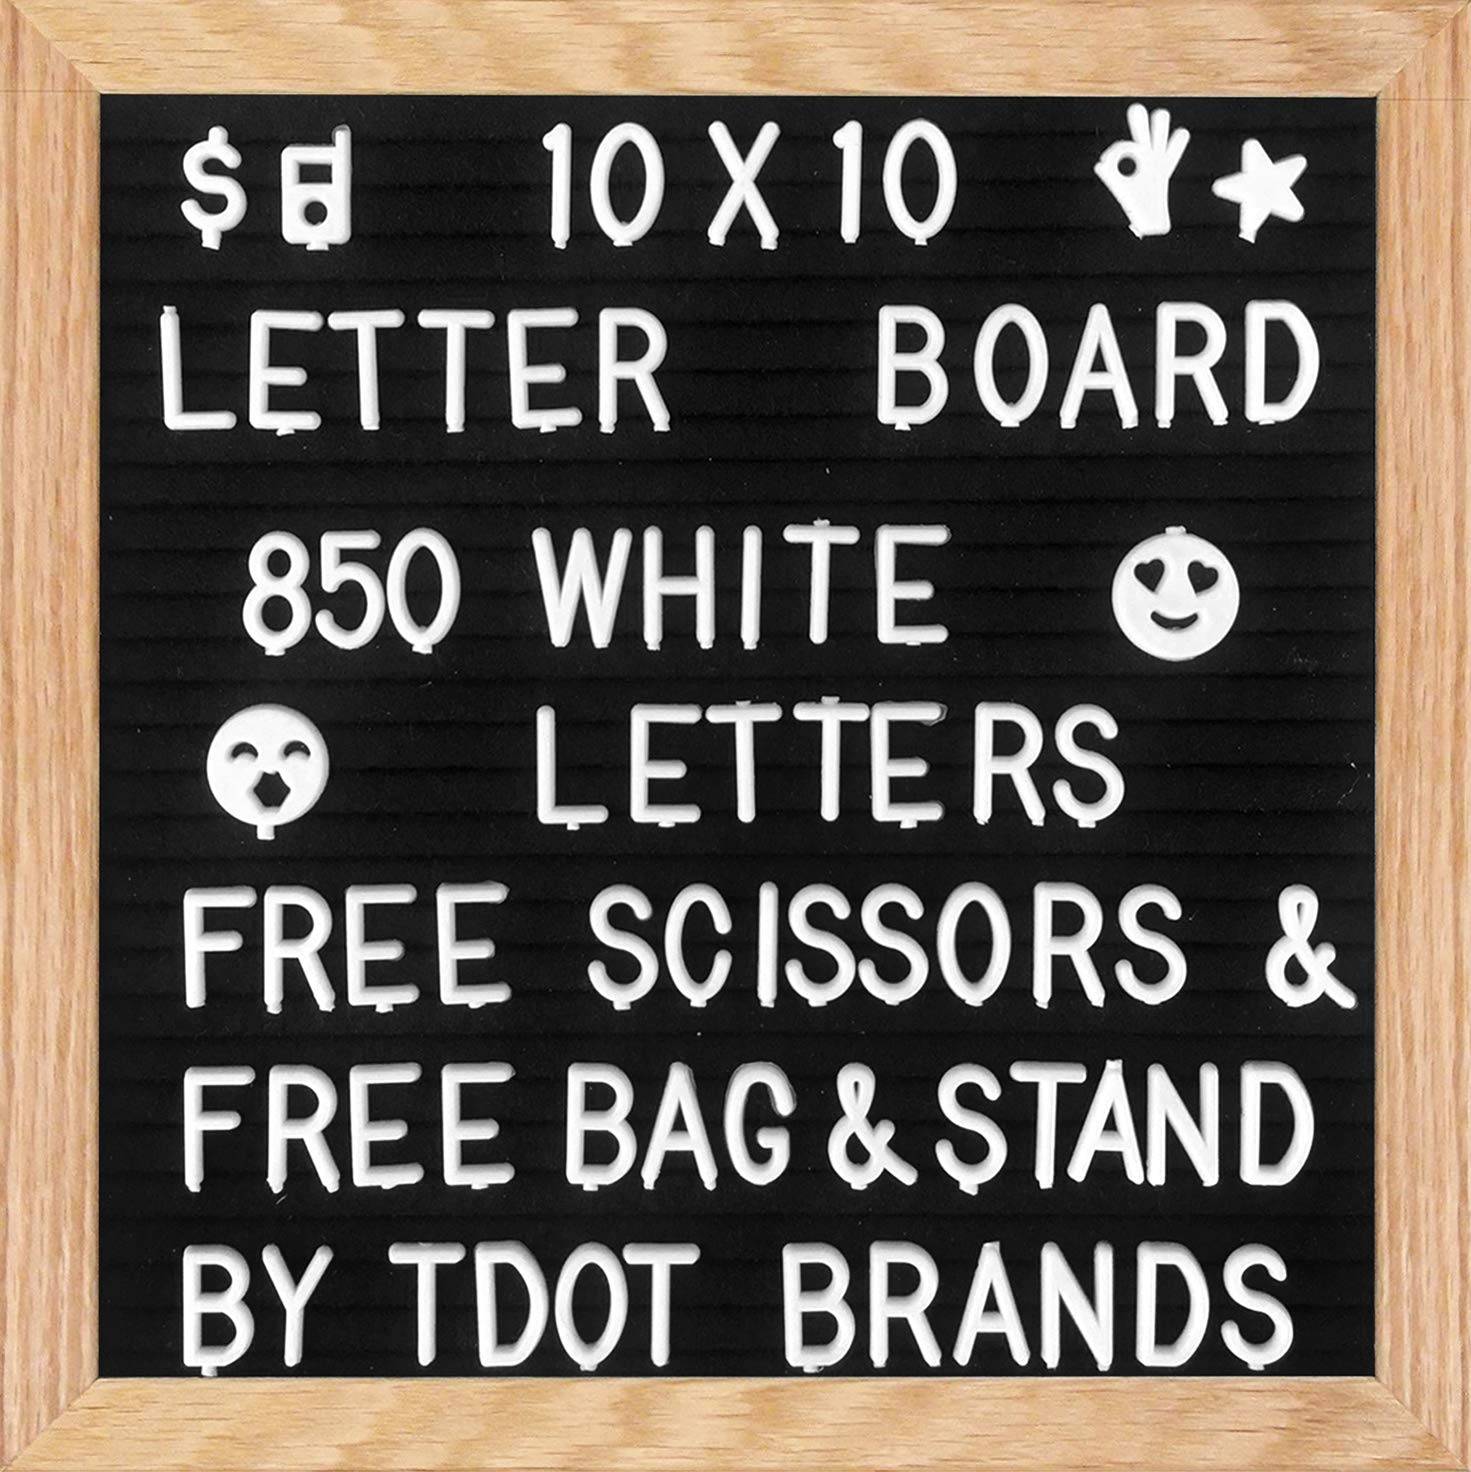 Letter Board - Felt Letter Board Changeable 10x10 Inches with 850 WHITE  Letters, Numbers & Symbols, Wooden Message Board FRAME With Wooden STAND,  FREE